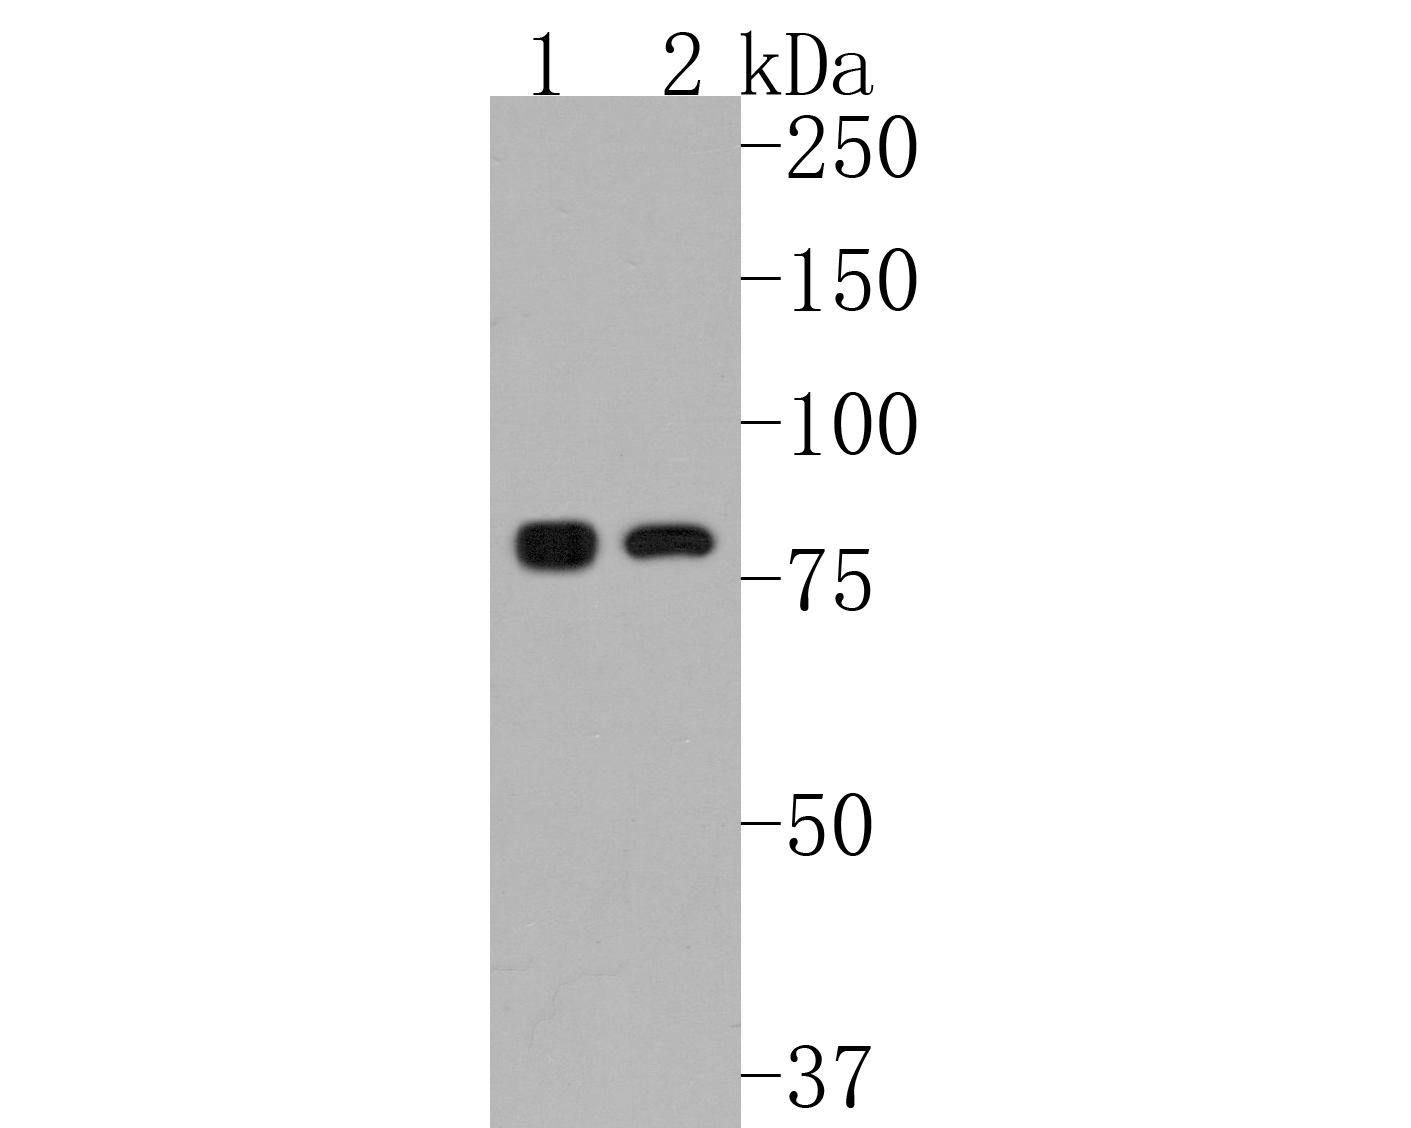 Western blot analysis of IKK alpha on different lysates. Proteins were transferred to a PVDF membrane and blocked with 5% BSA in PBS for 1 hour at room temperature. The primary antibody (ET1611-15, 1/500) was used in 5% BSA at room temperature for 2 hours. Goat Anti-Rabbit IgG - HRP Secondary Antibody (HA1001) at 1:5,000 dilution was used for 1 hour at room temperature.<br /> Positive control: <br /> Lane 1: Jurkat cell lysate<br /> Lane 2: Hela cell lysate